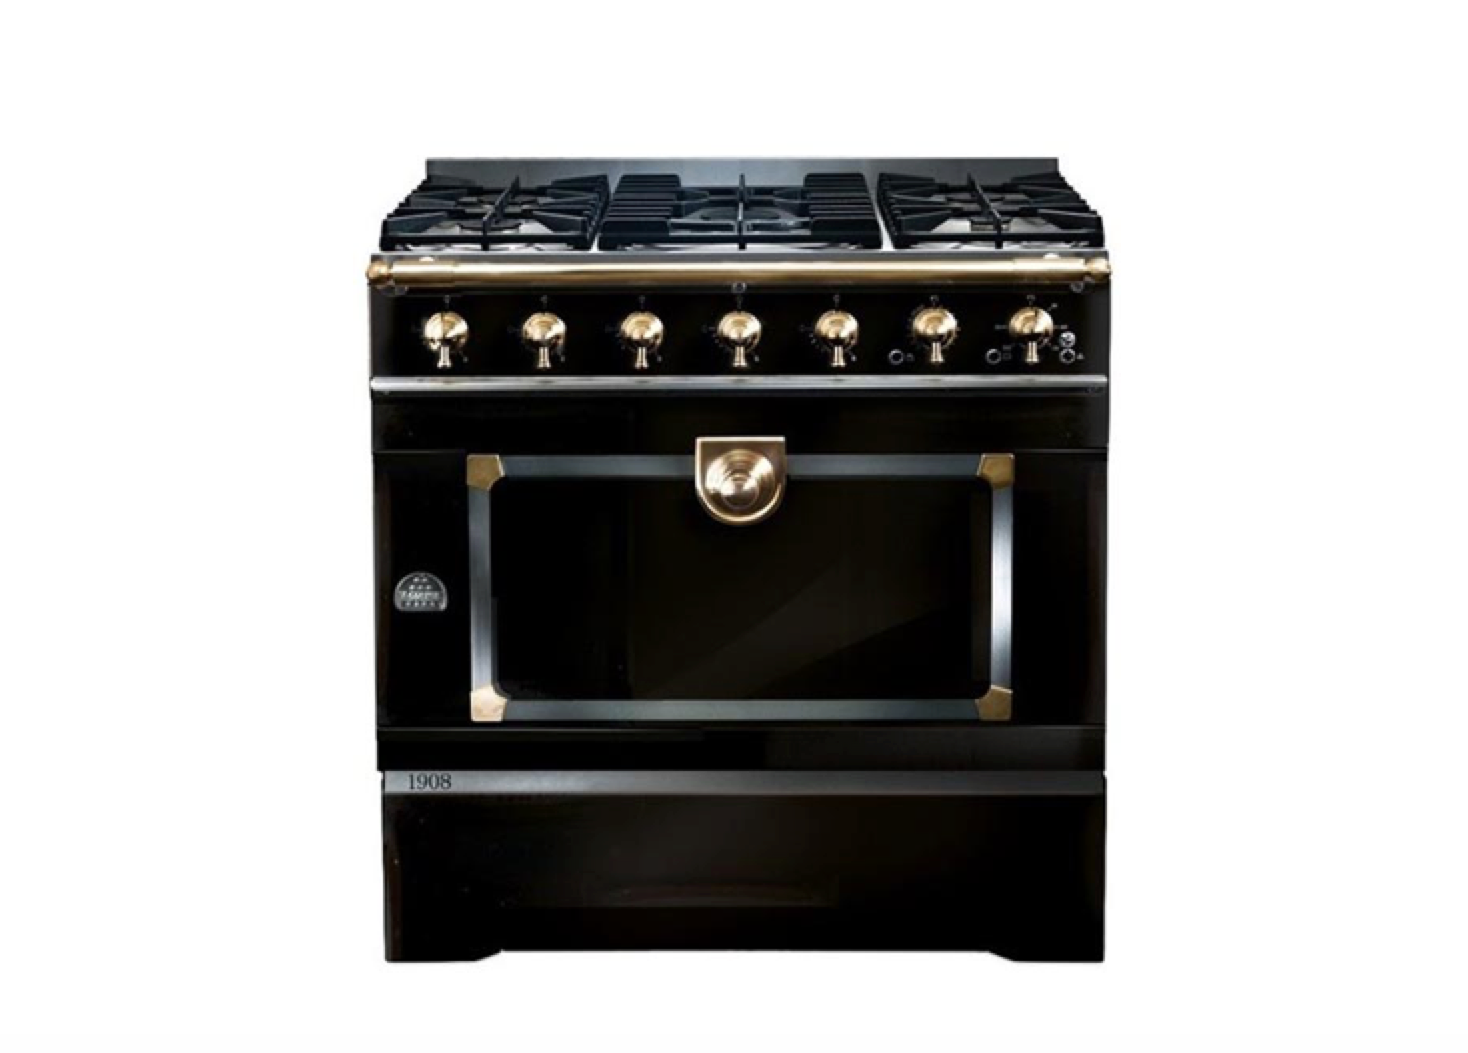 Remodeling 101: 8 Sources for High-End Used Appliances